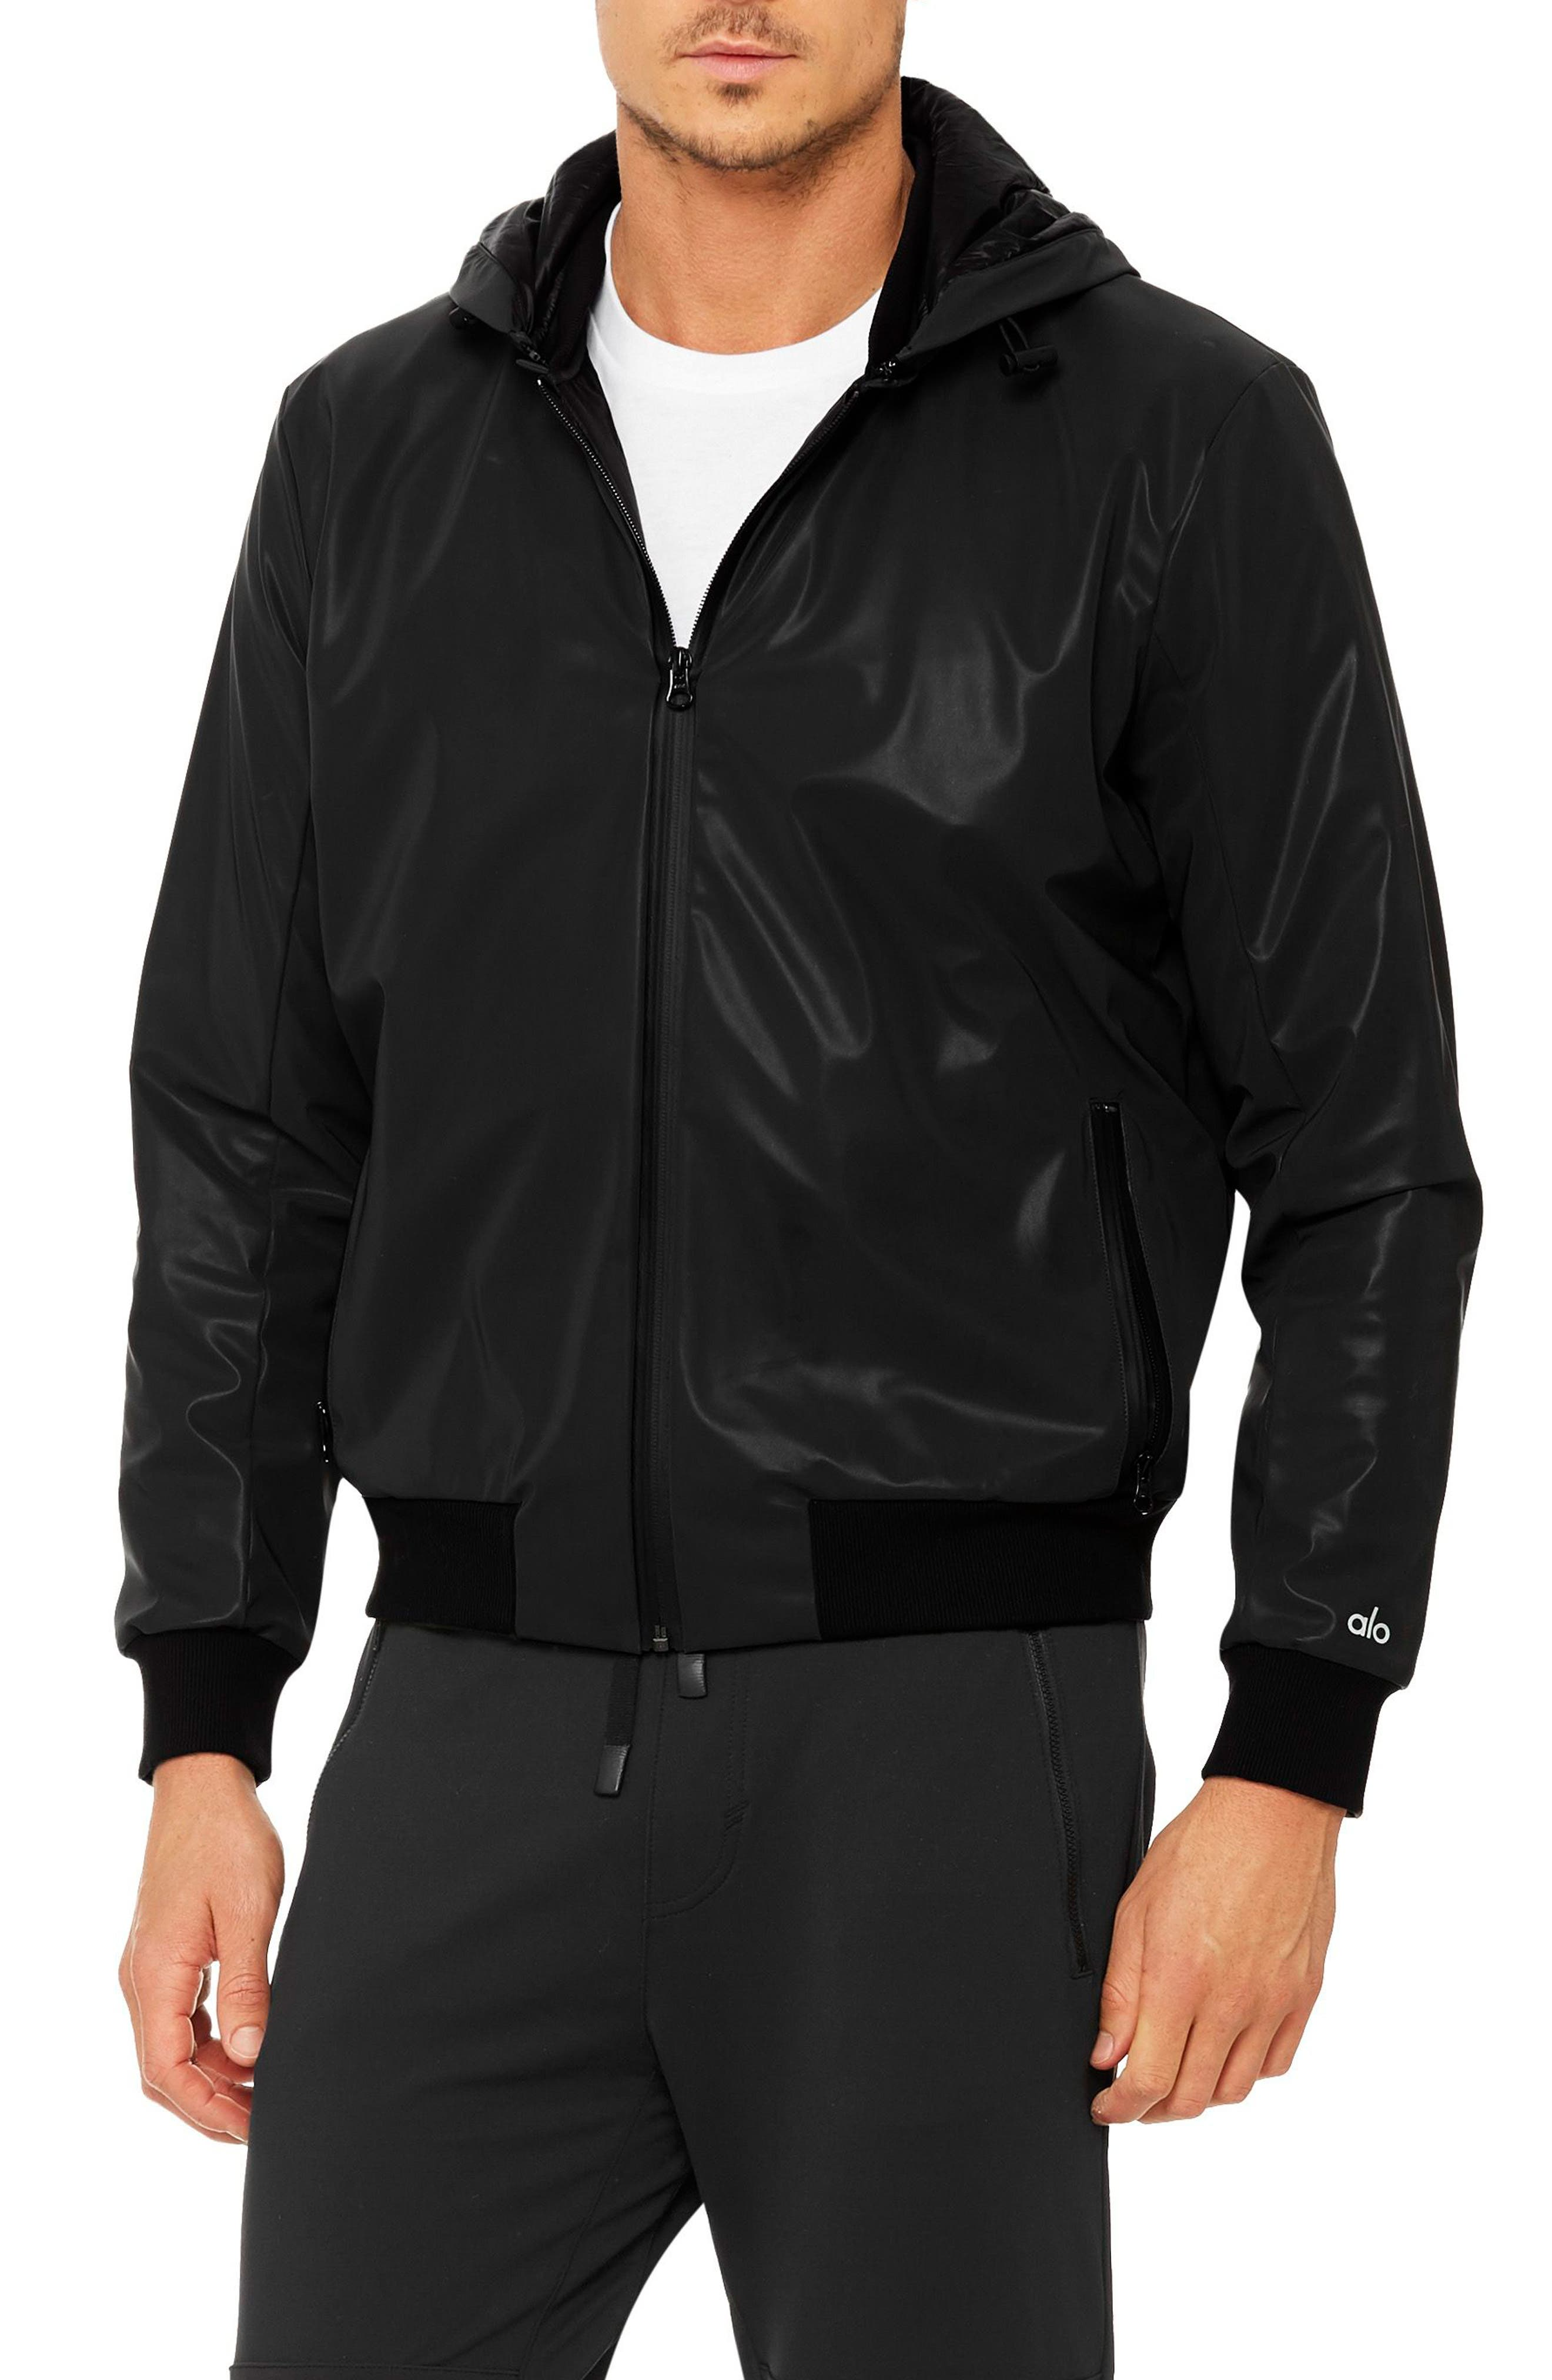 Fleet Bomber Jacket,                             Main thumbnail 1, color,                             Black